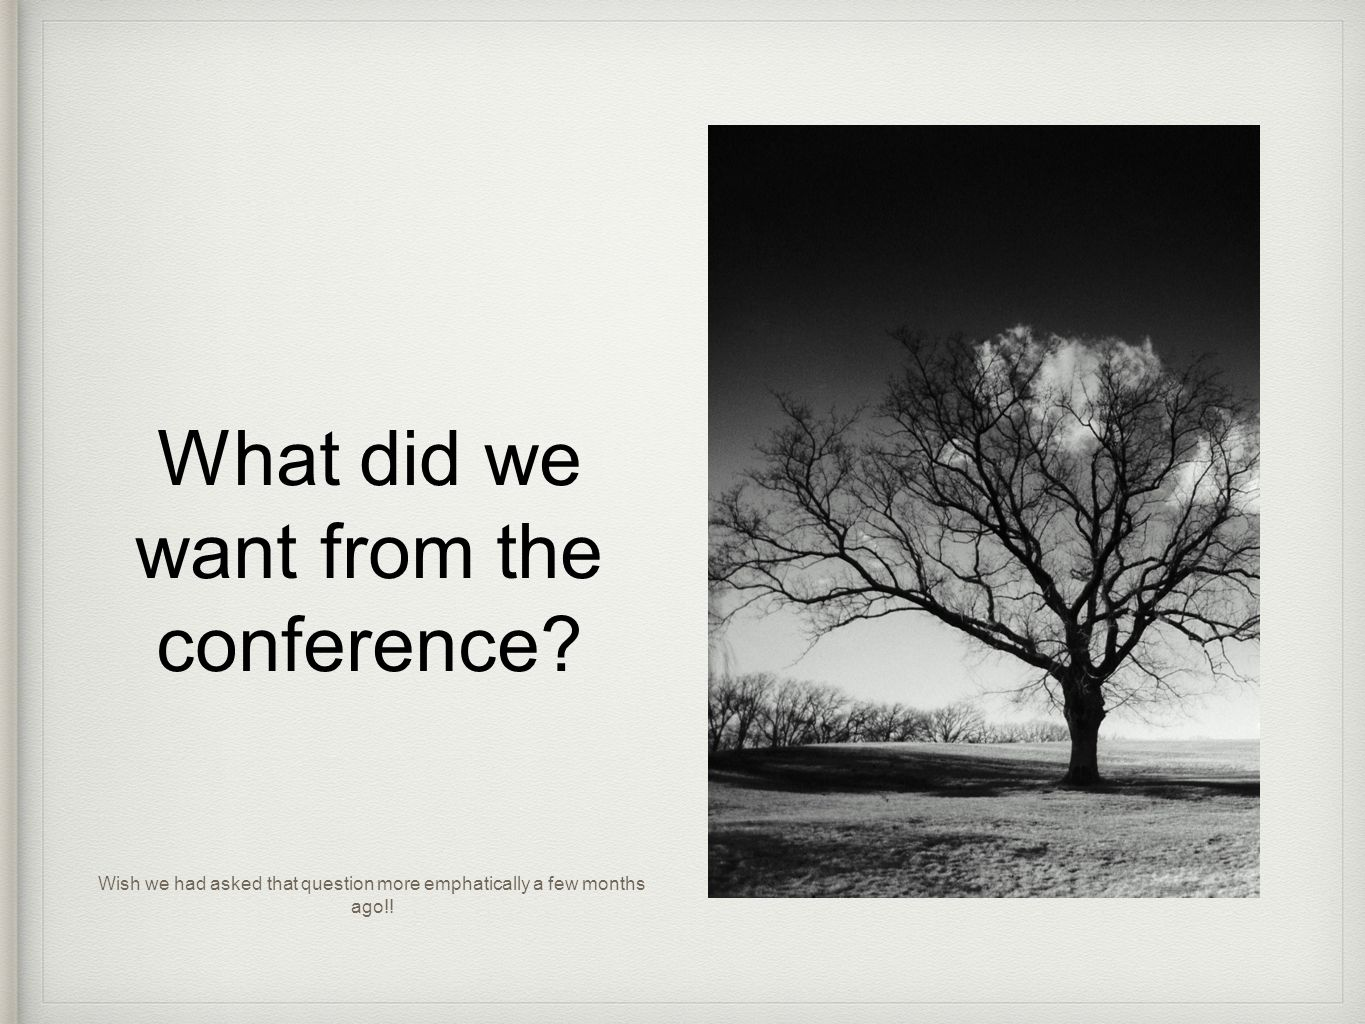 What did we want from the conference? Wish we had asked that question more emphatically a few months ago!!